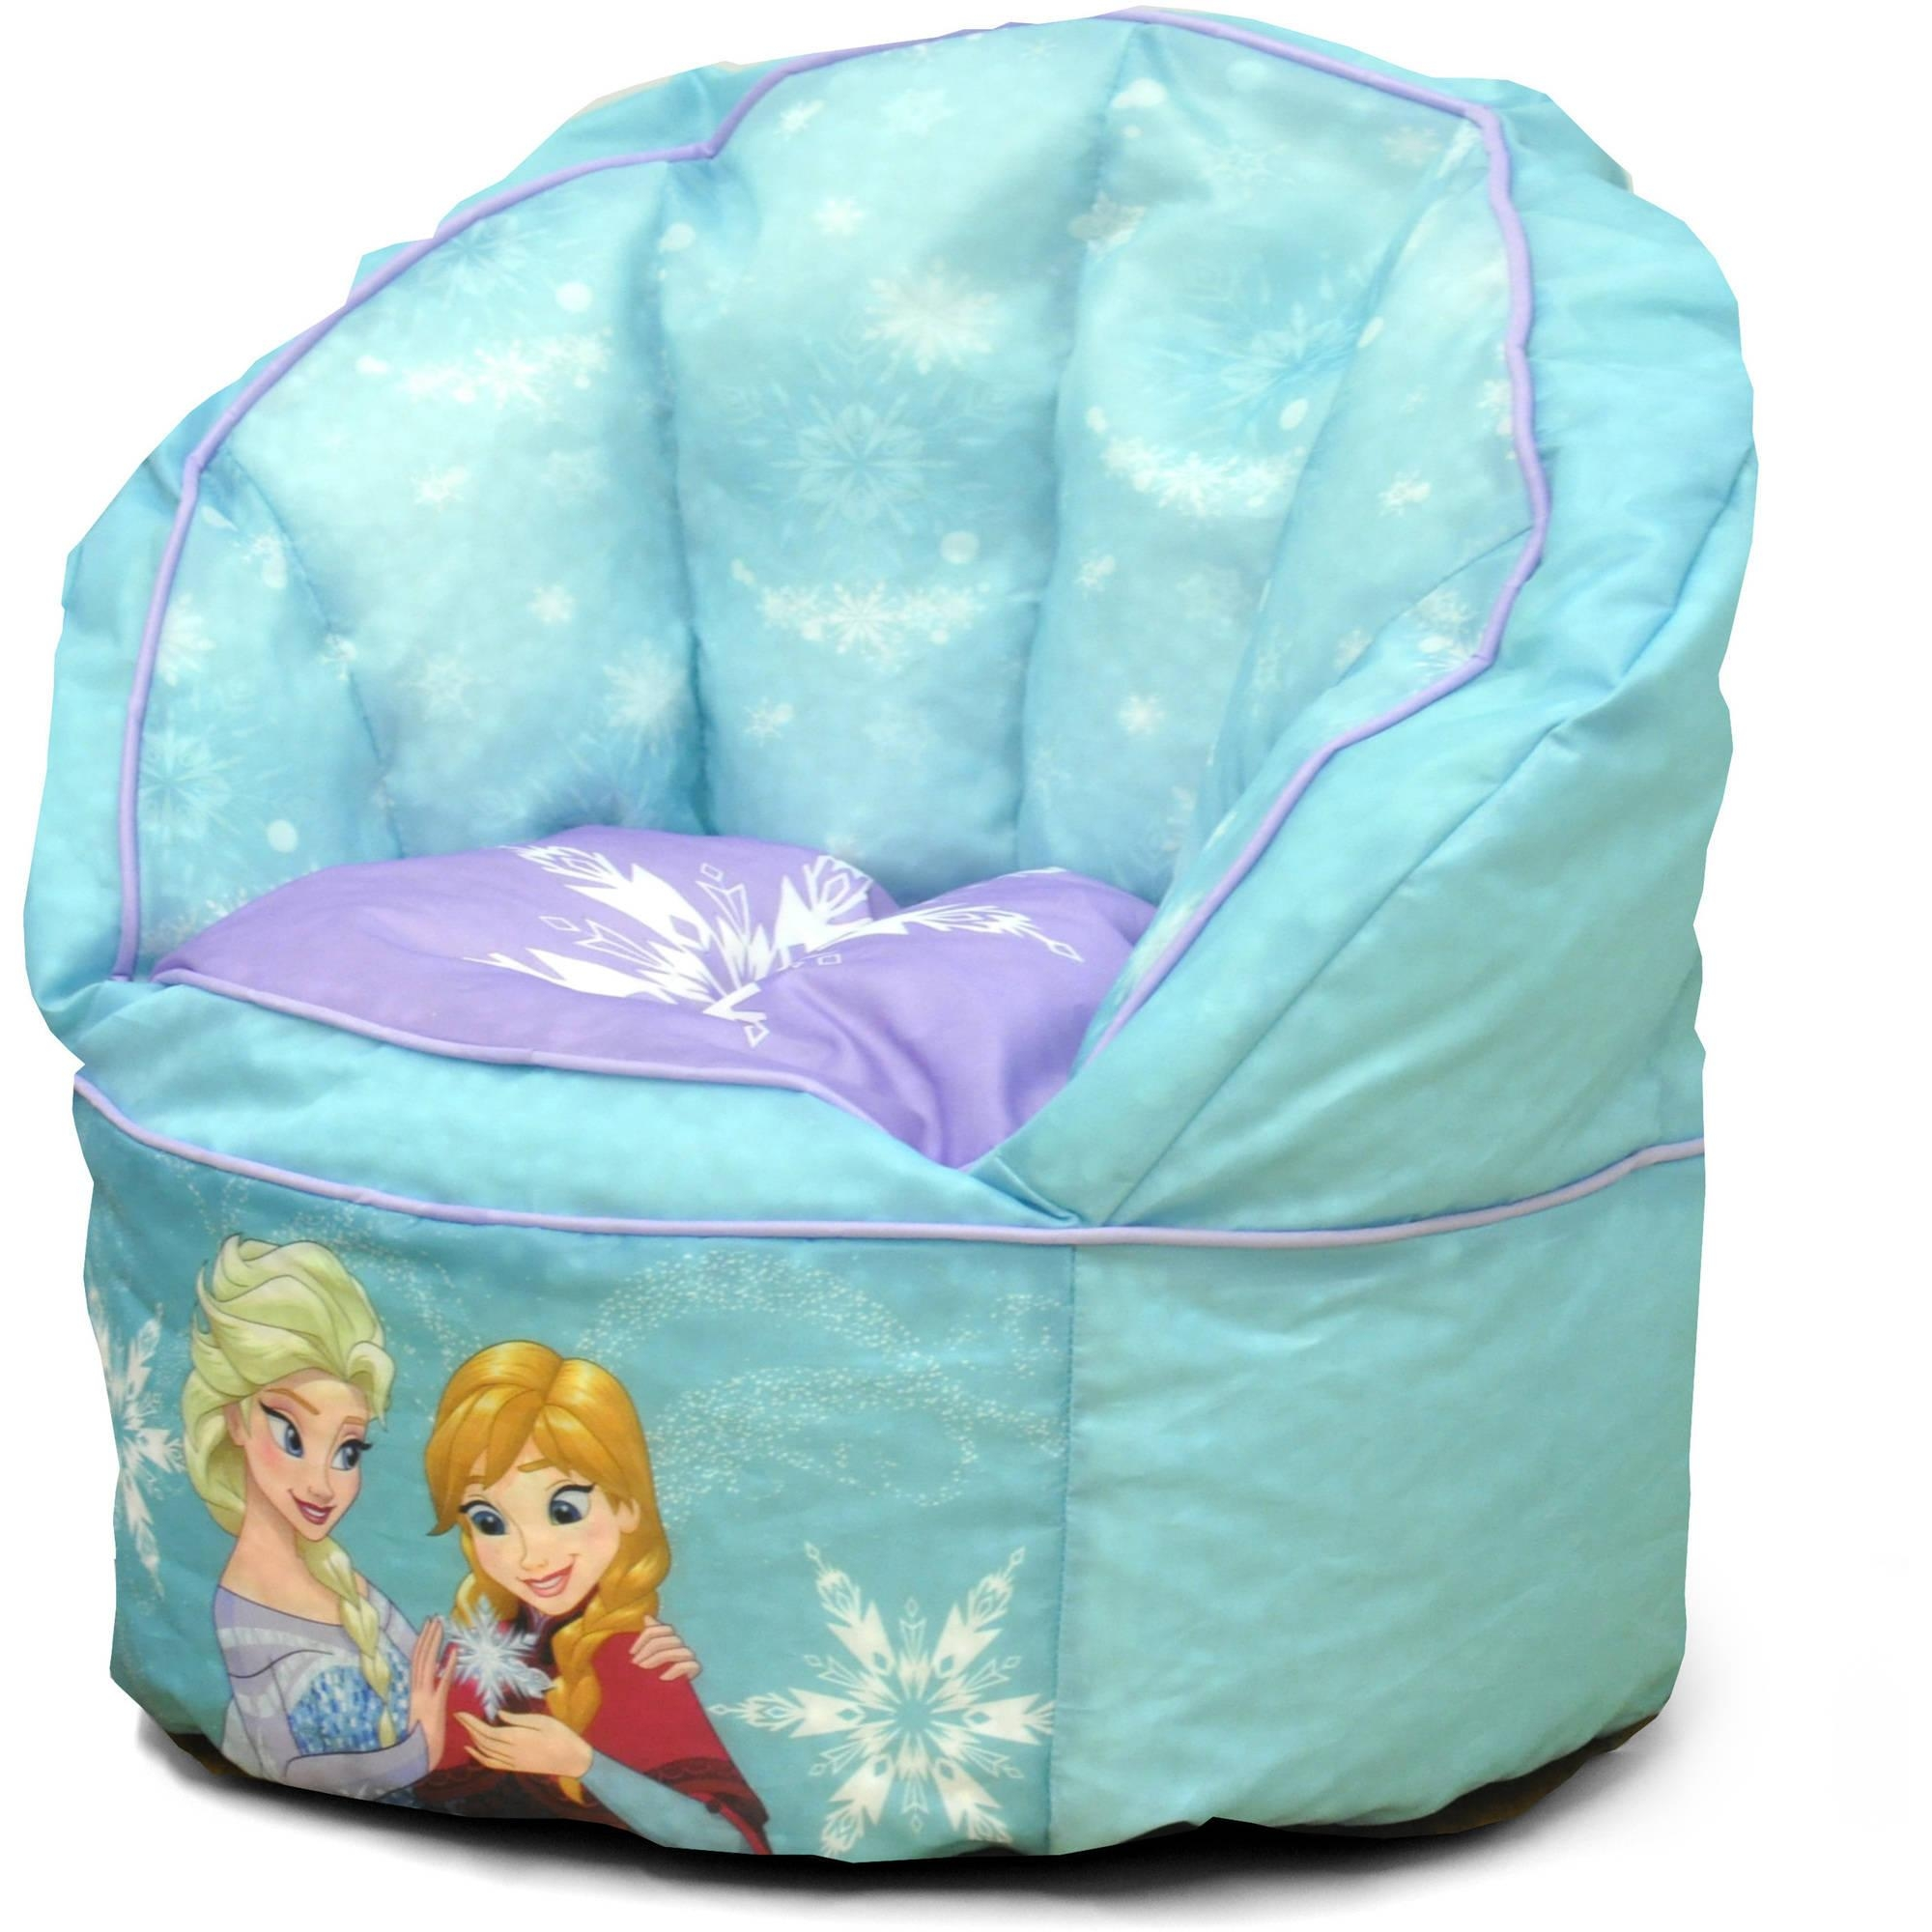 Disney Frozen Sofa Bean Bag Chair With Piping – Walmart With Disney Sofa Chairs (View 14 of 20)